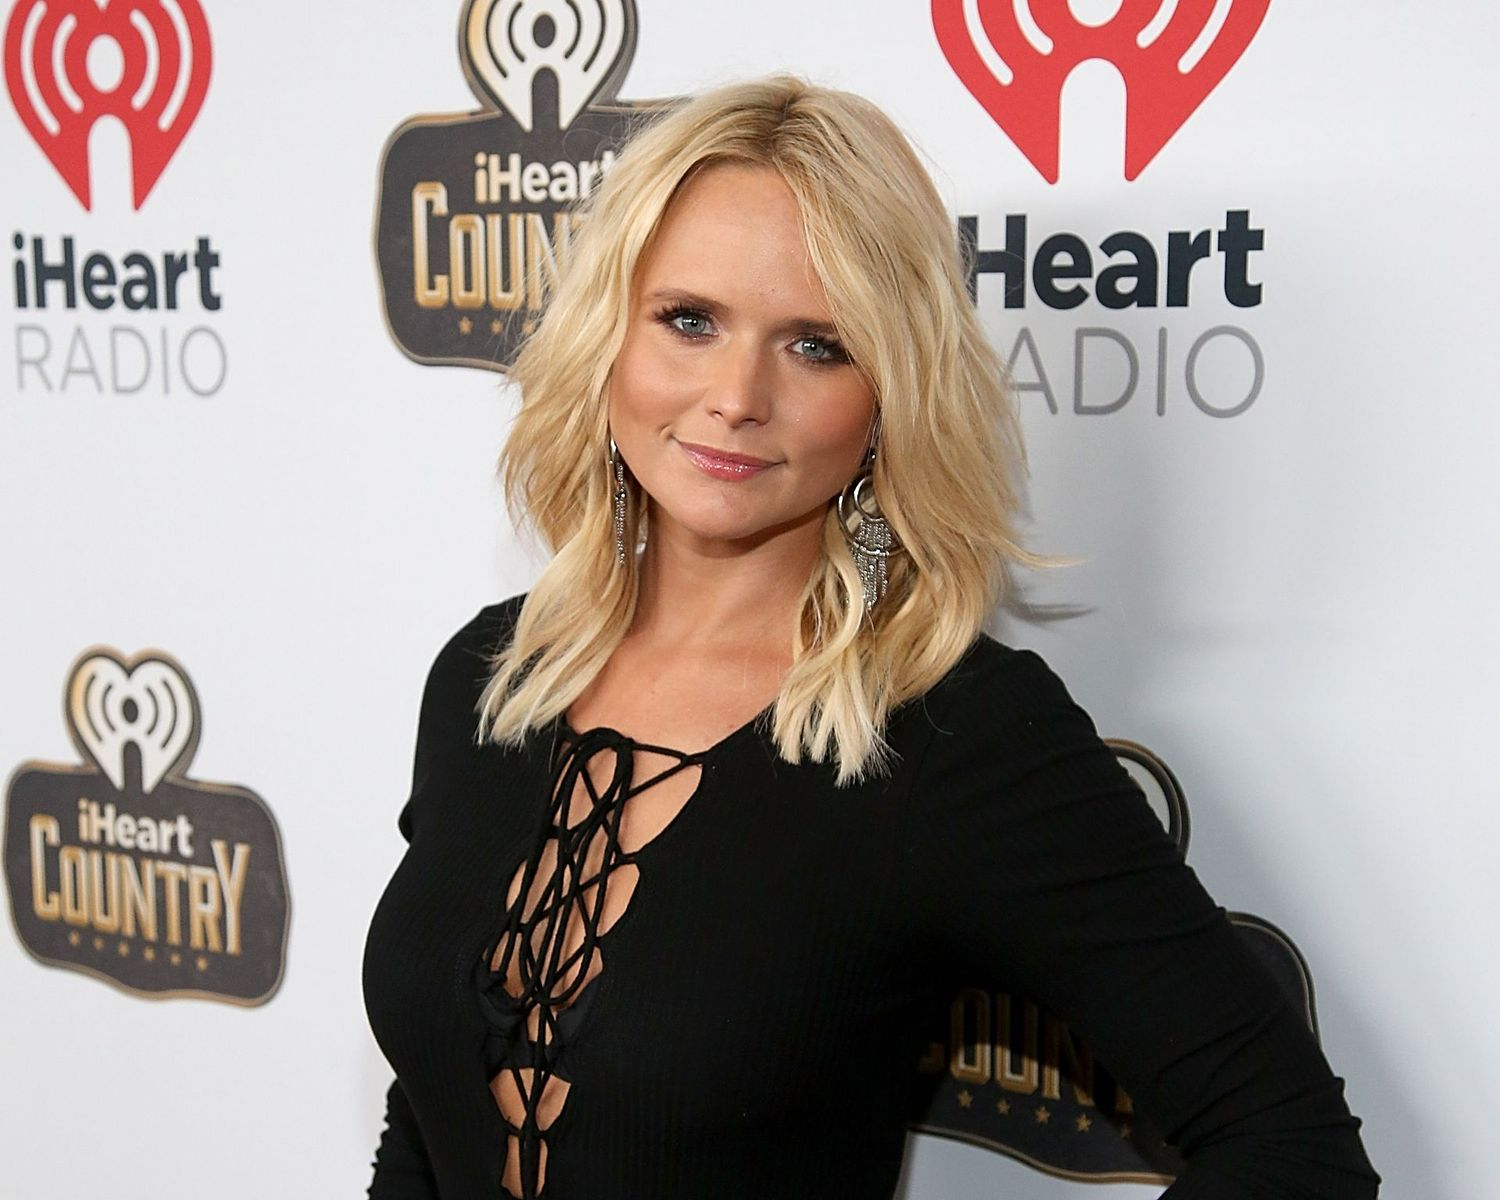 Miranda Lambert attends the 2016 iHeartCountry Festival at The Frank Erwin Center on April 30, 2016. | Photo: Getty Images